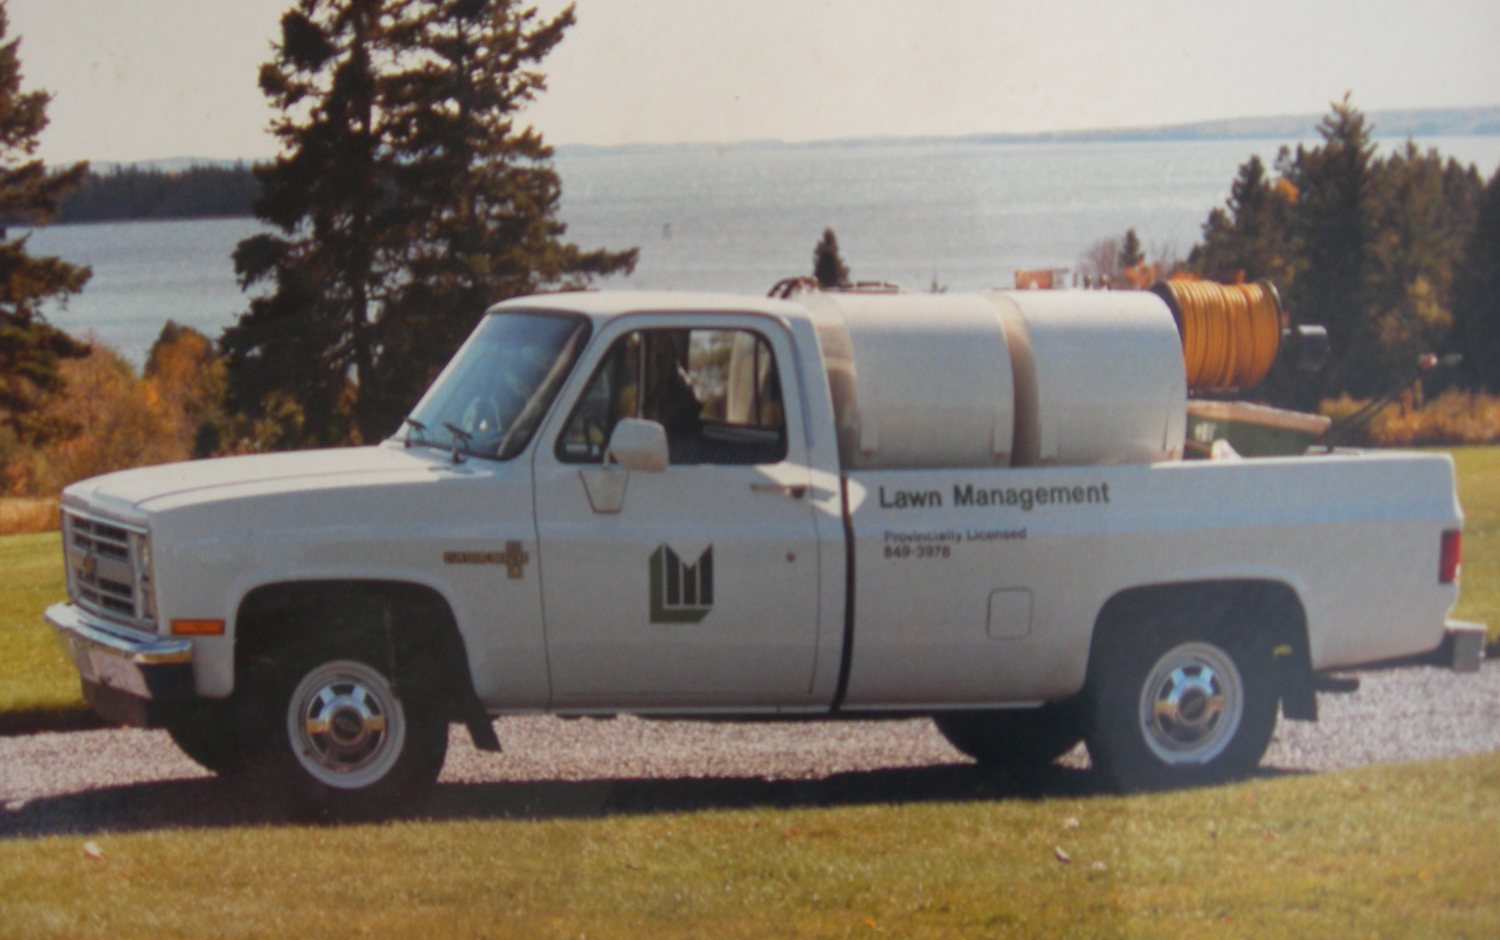 Lawn Management Truck in 1985